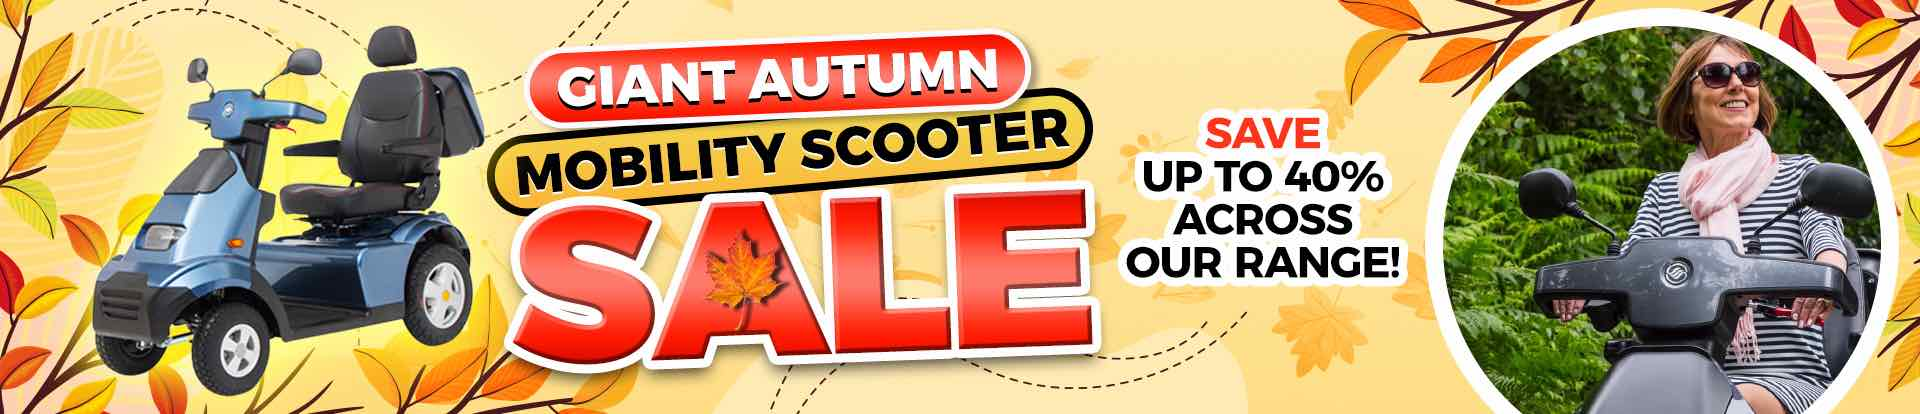 Autumn Mobility Scooter Sale 2021